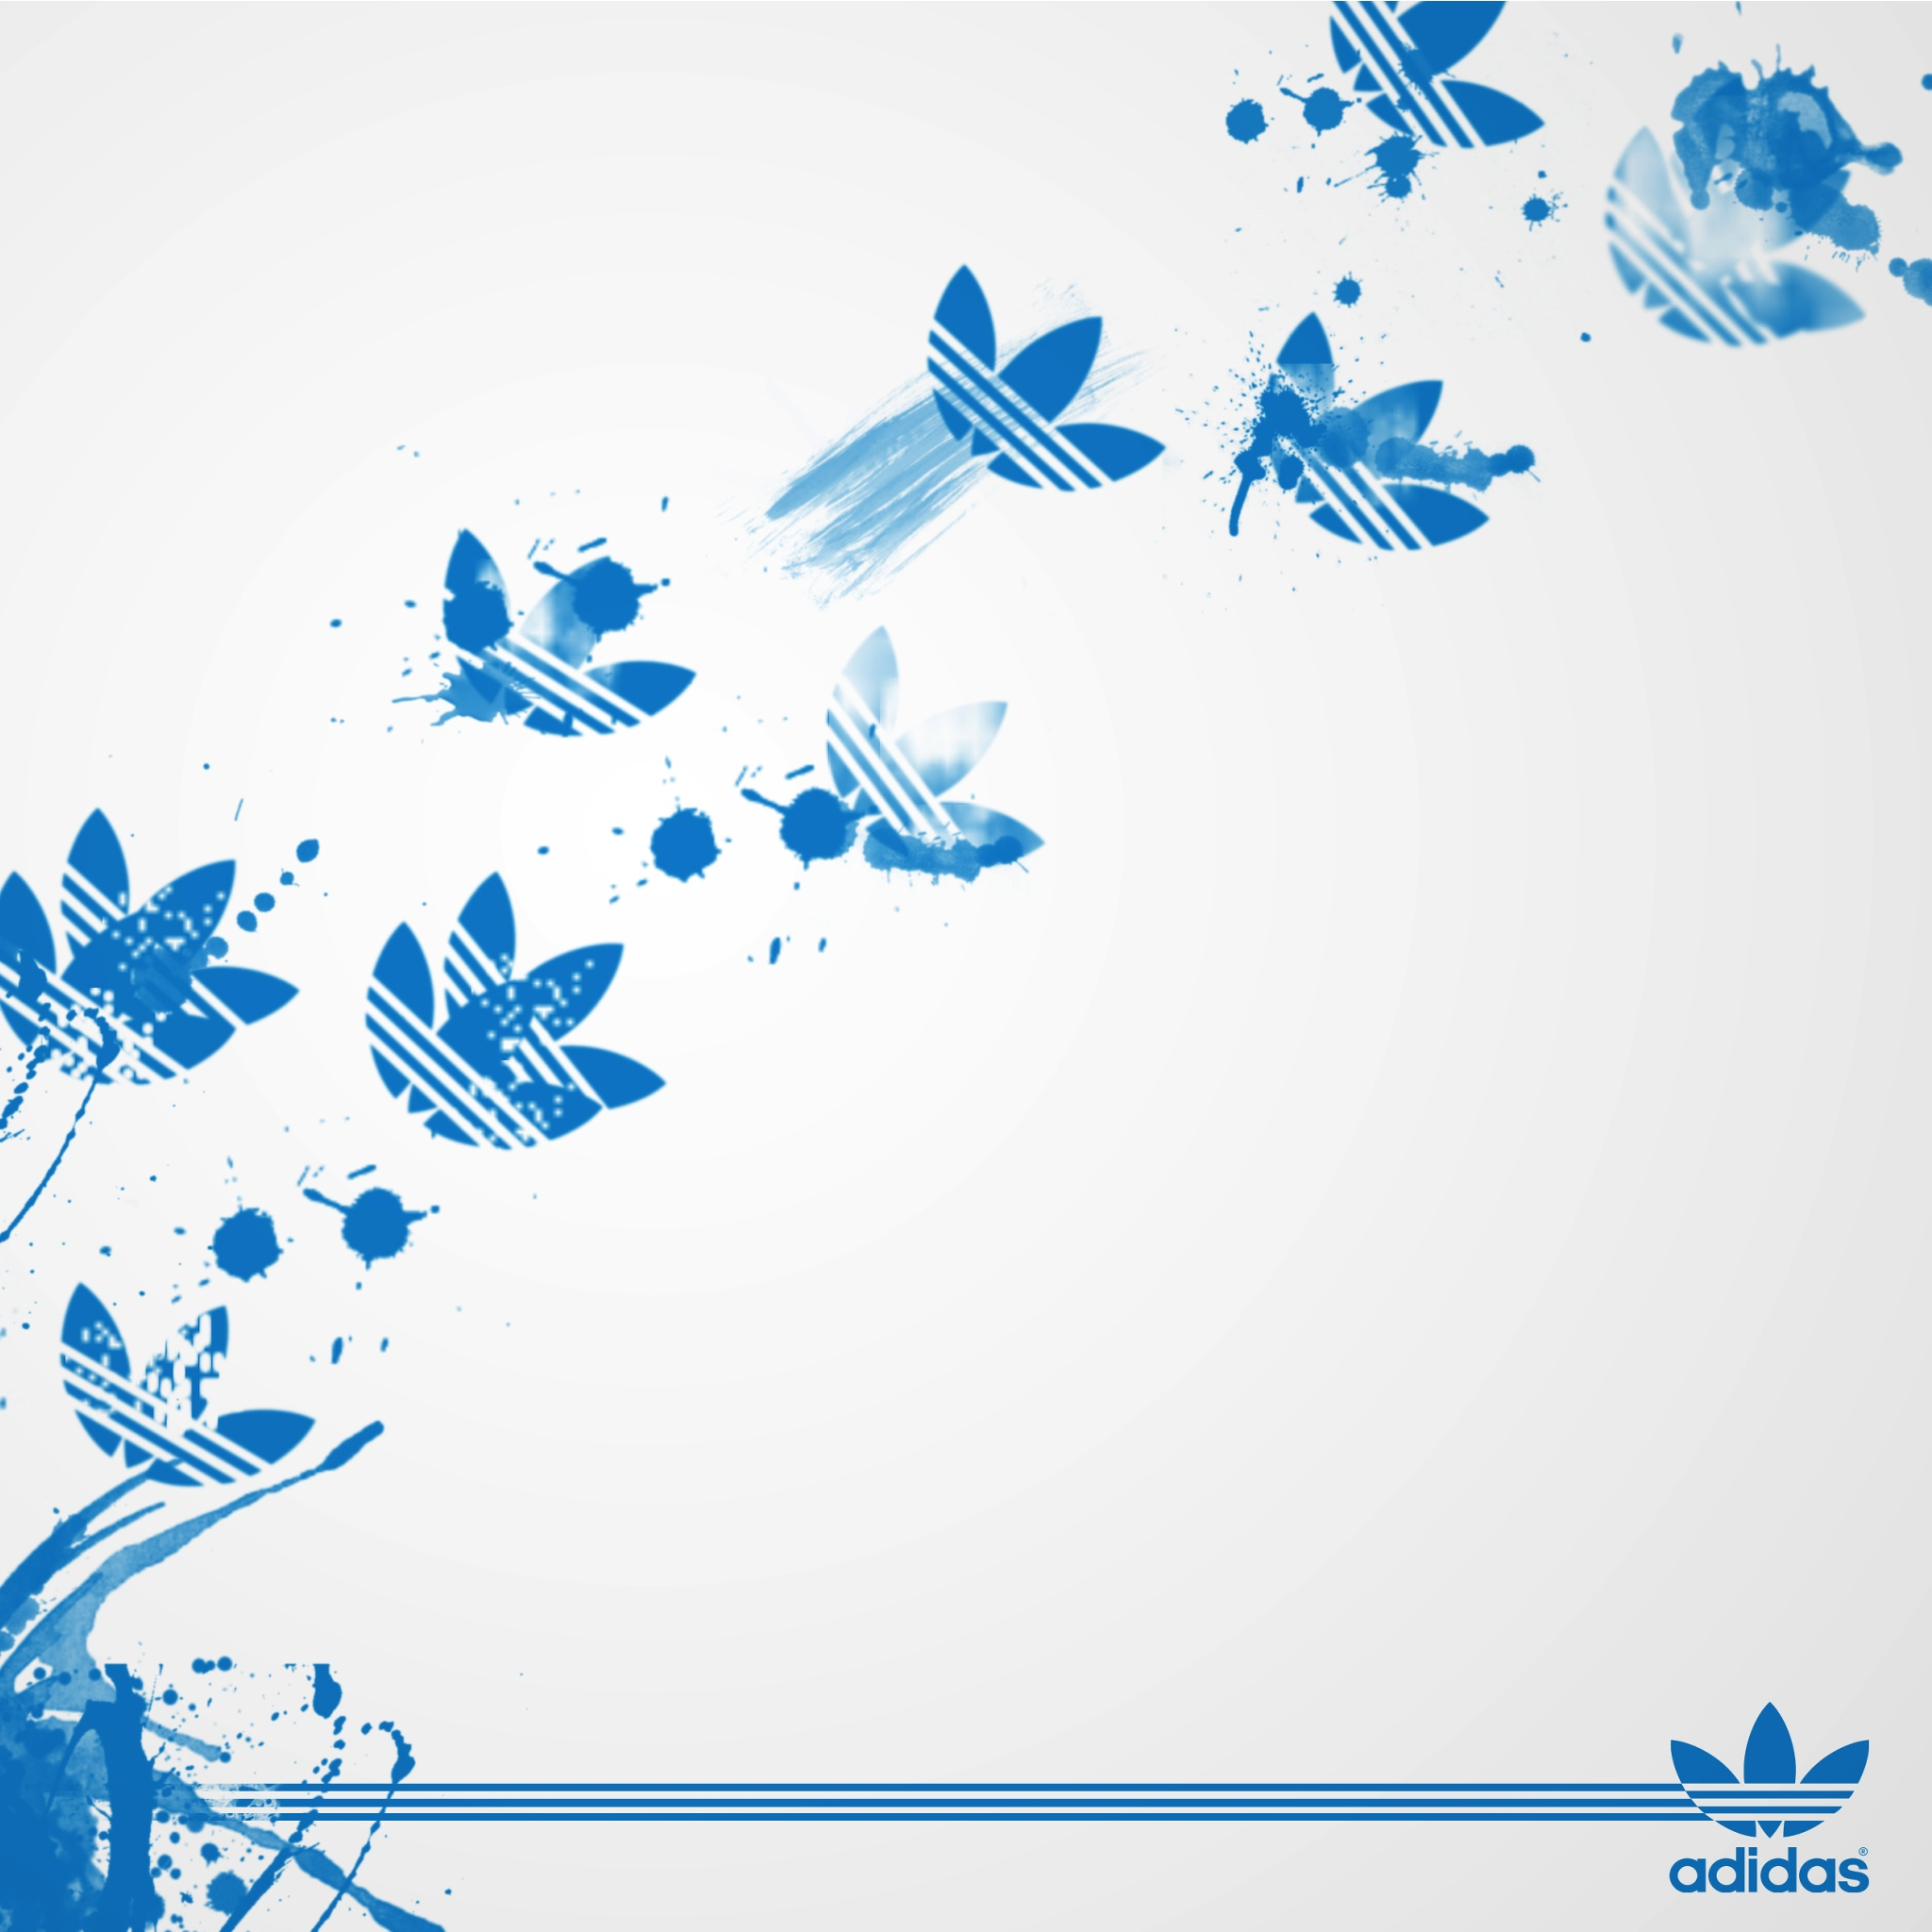 Adidas Original Ipad Wallpaper For Iphone 11 Pro Max X 8 7 6 Free Download On 3wallpapers